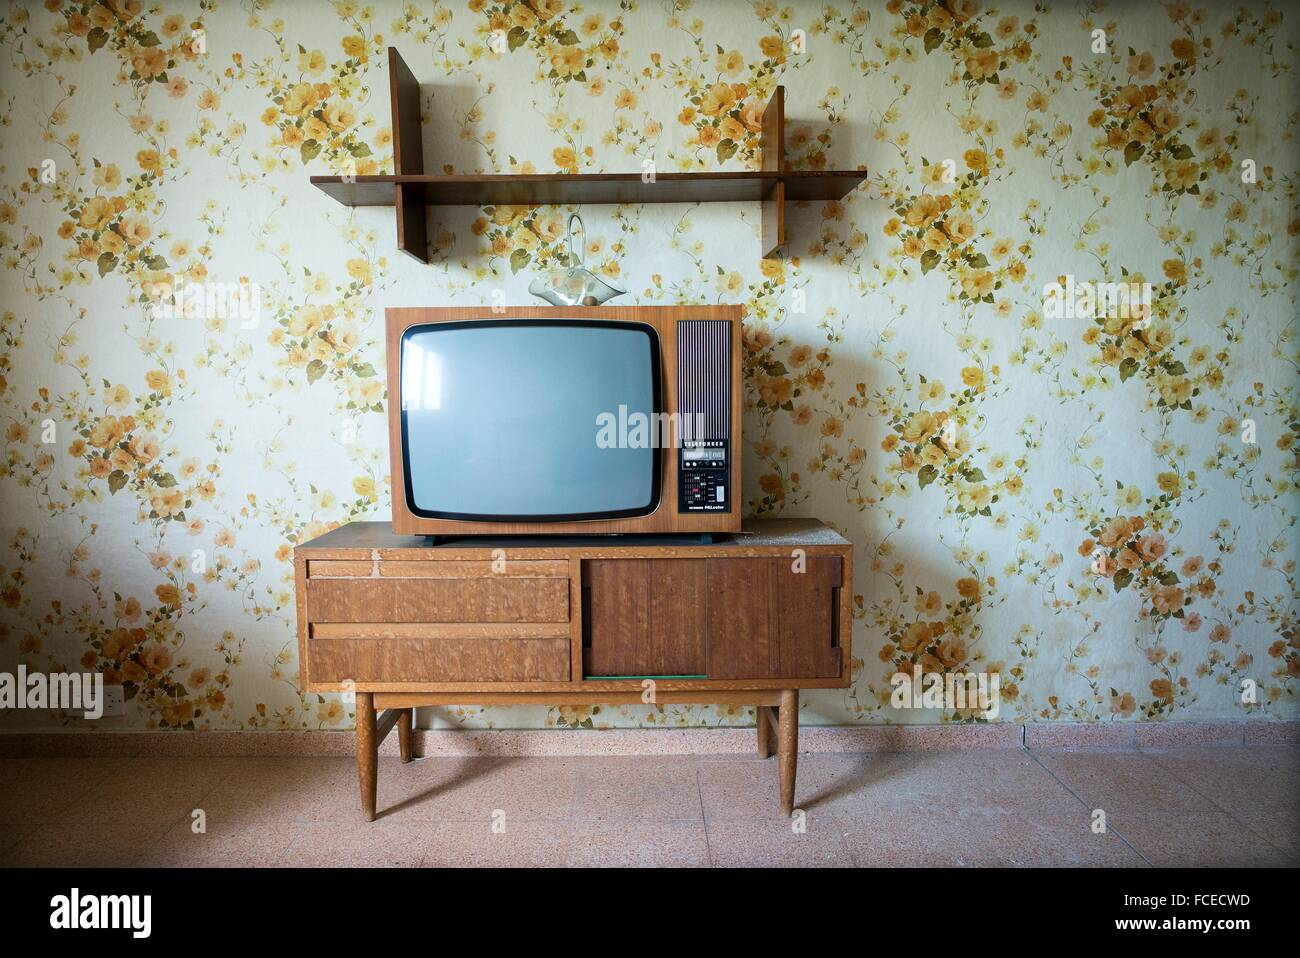 Vintage Living Room With A Floral Wallpaper In The Wall And Ta Stock Photo 93745161 Alamy